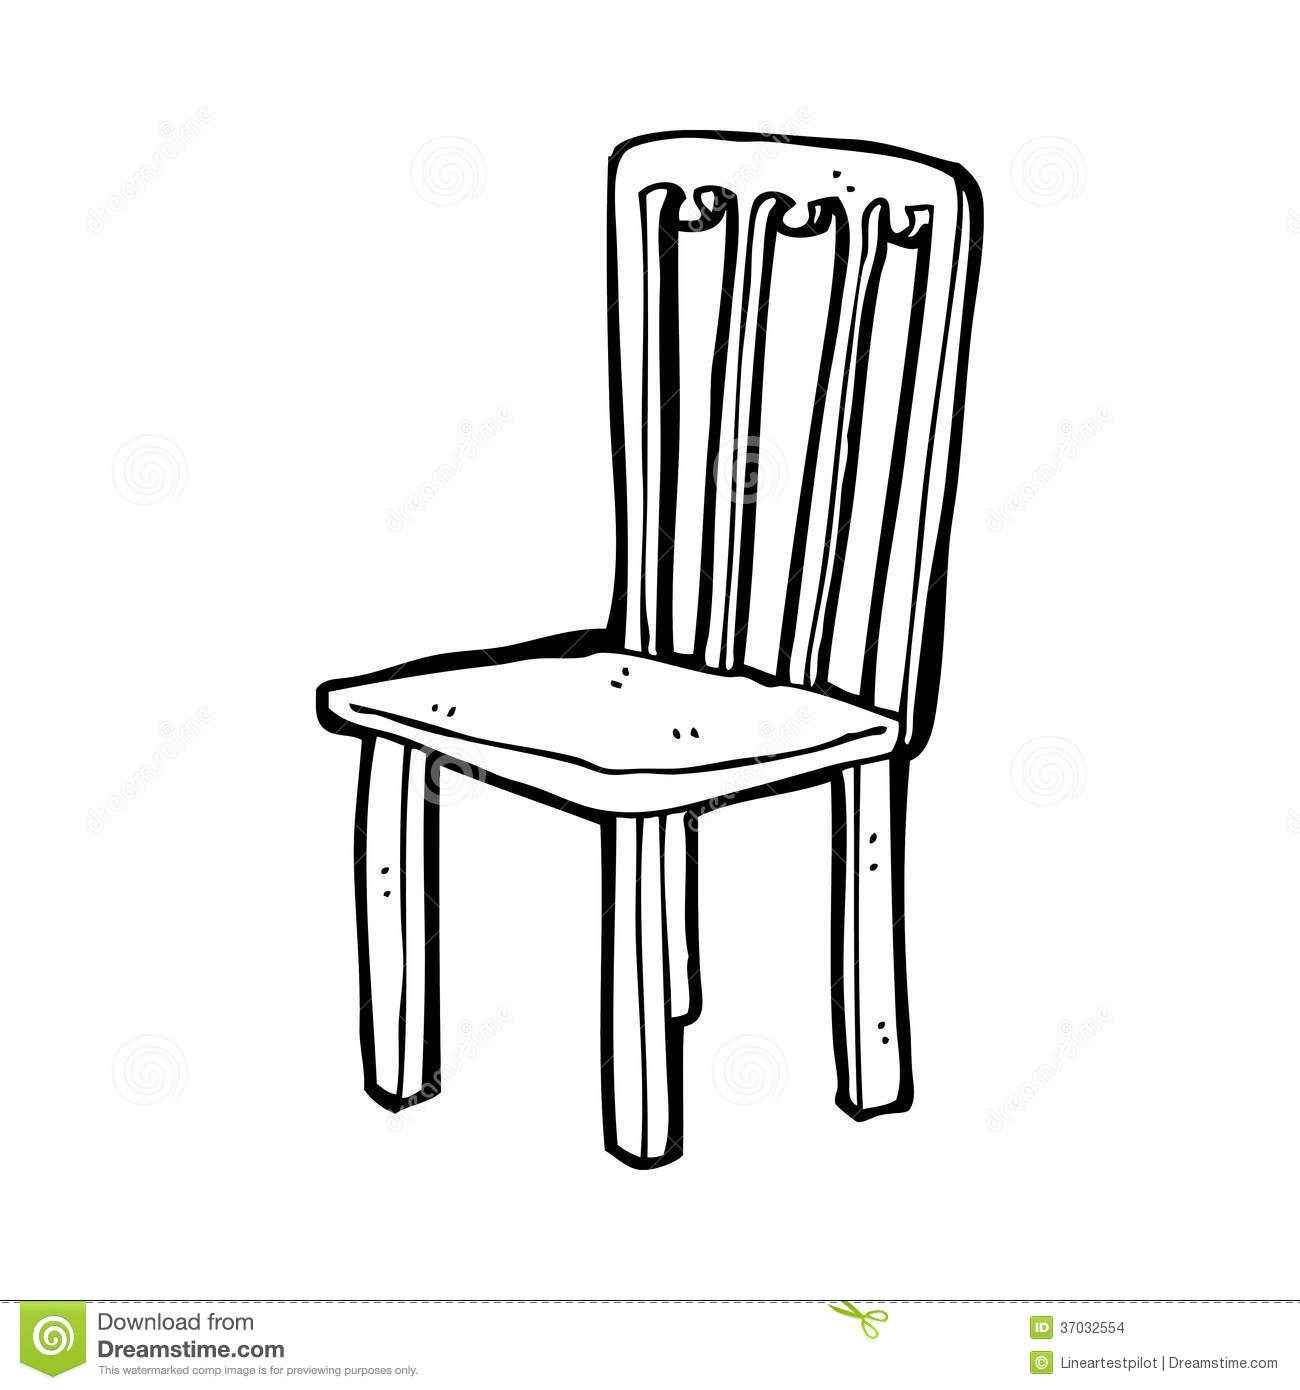 Clipart black and white chair 4 » Clipart Station.